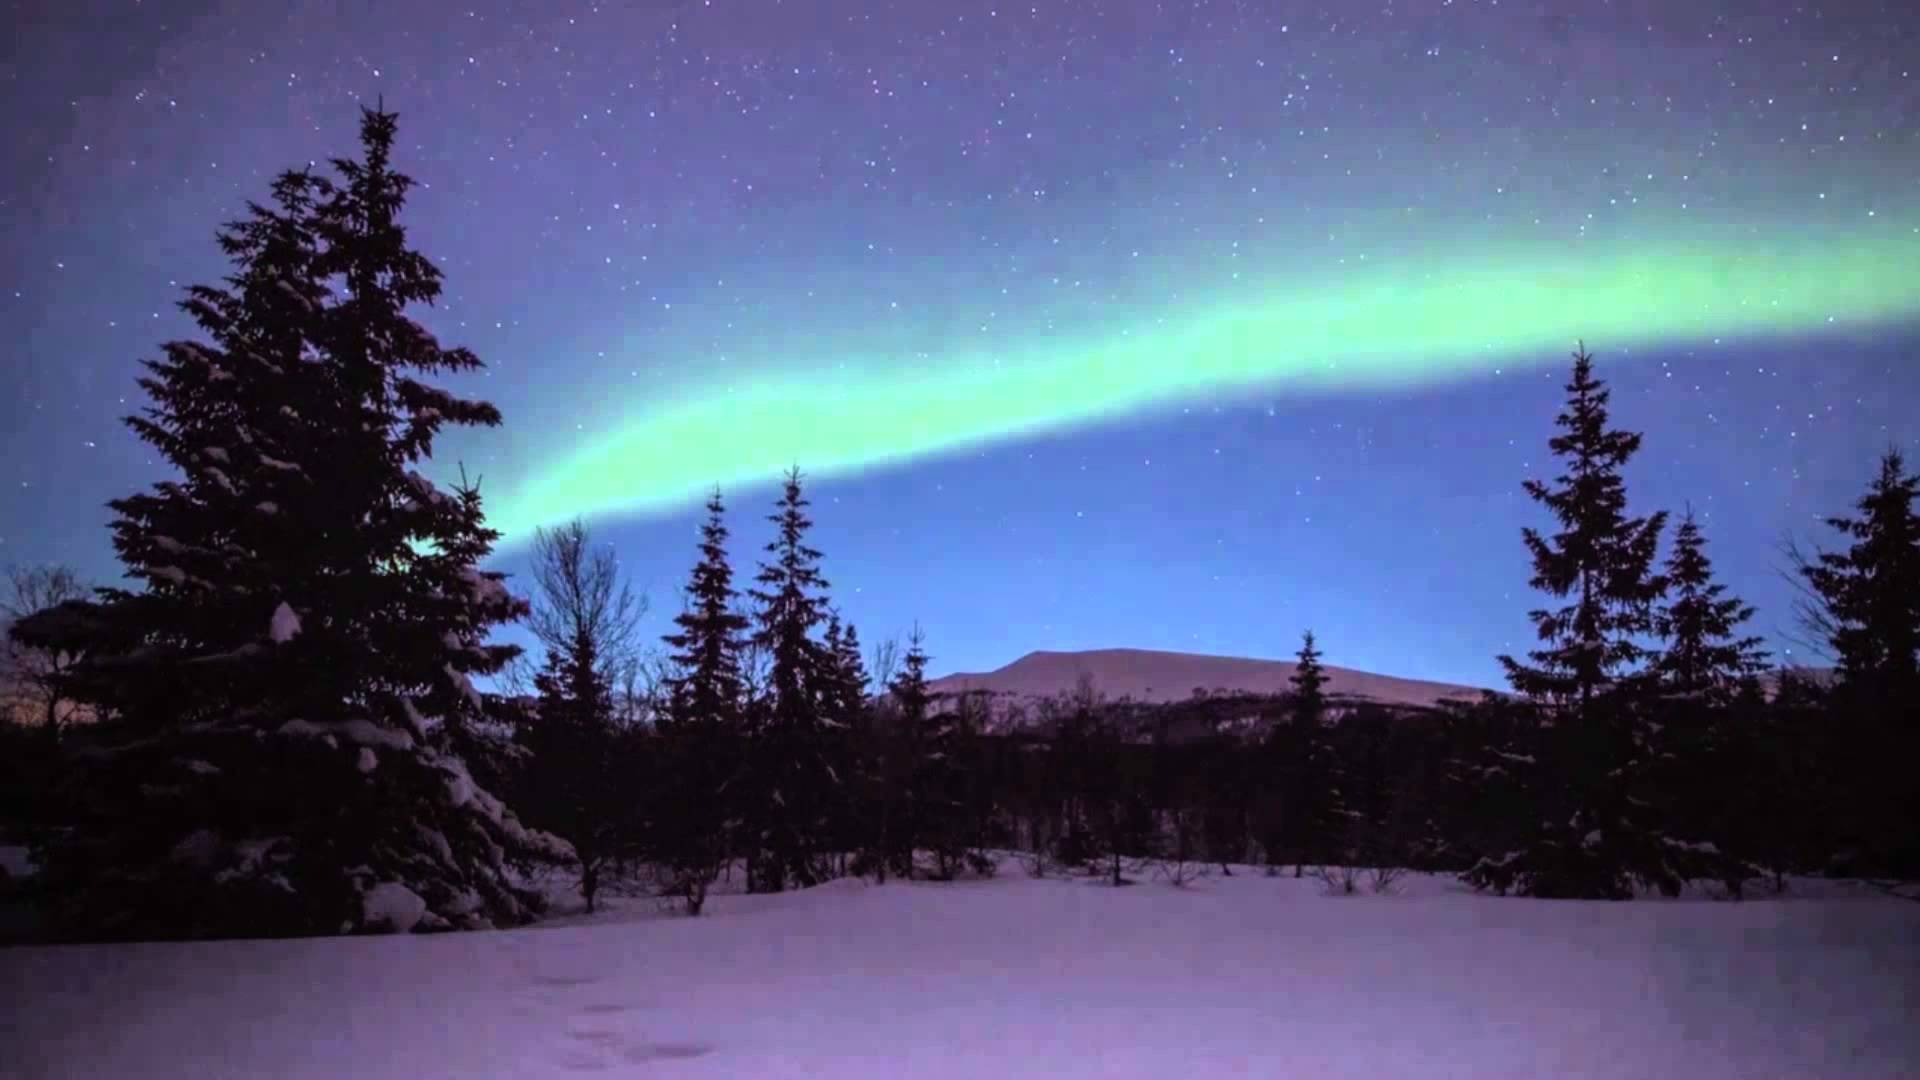 Clips of the Aurora from Northern Norway